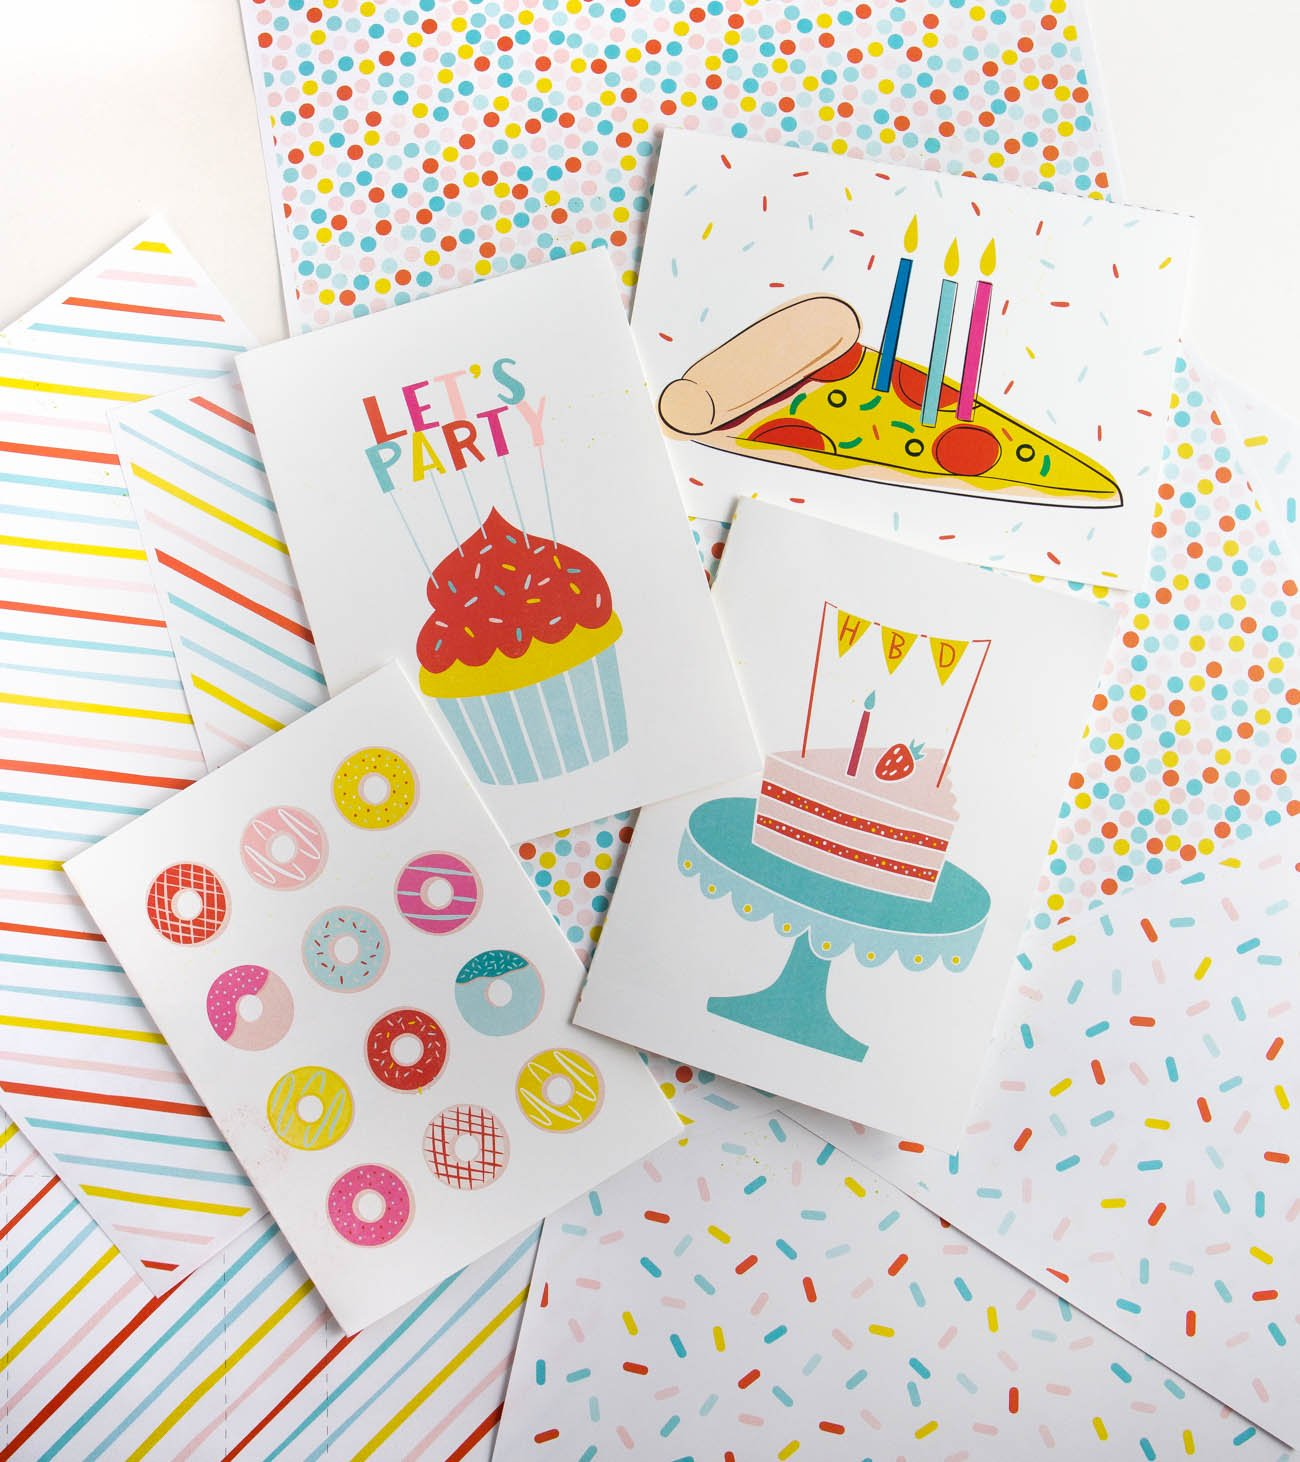 Four free printable birthday cards with donuts, cupcake let's party, pizza, and cake with HBD message